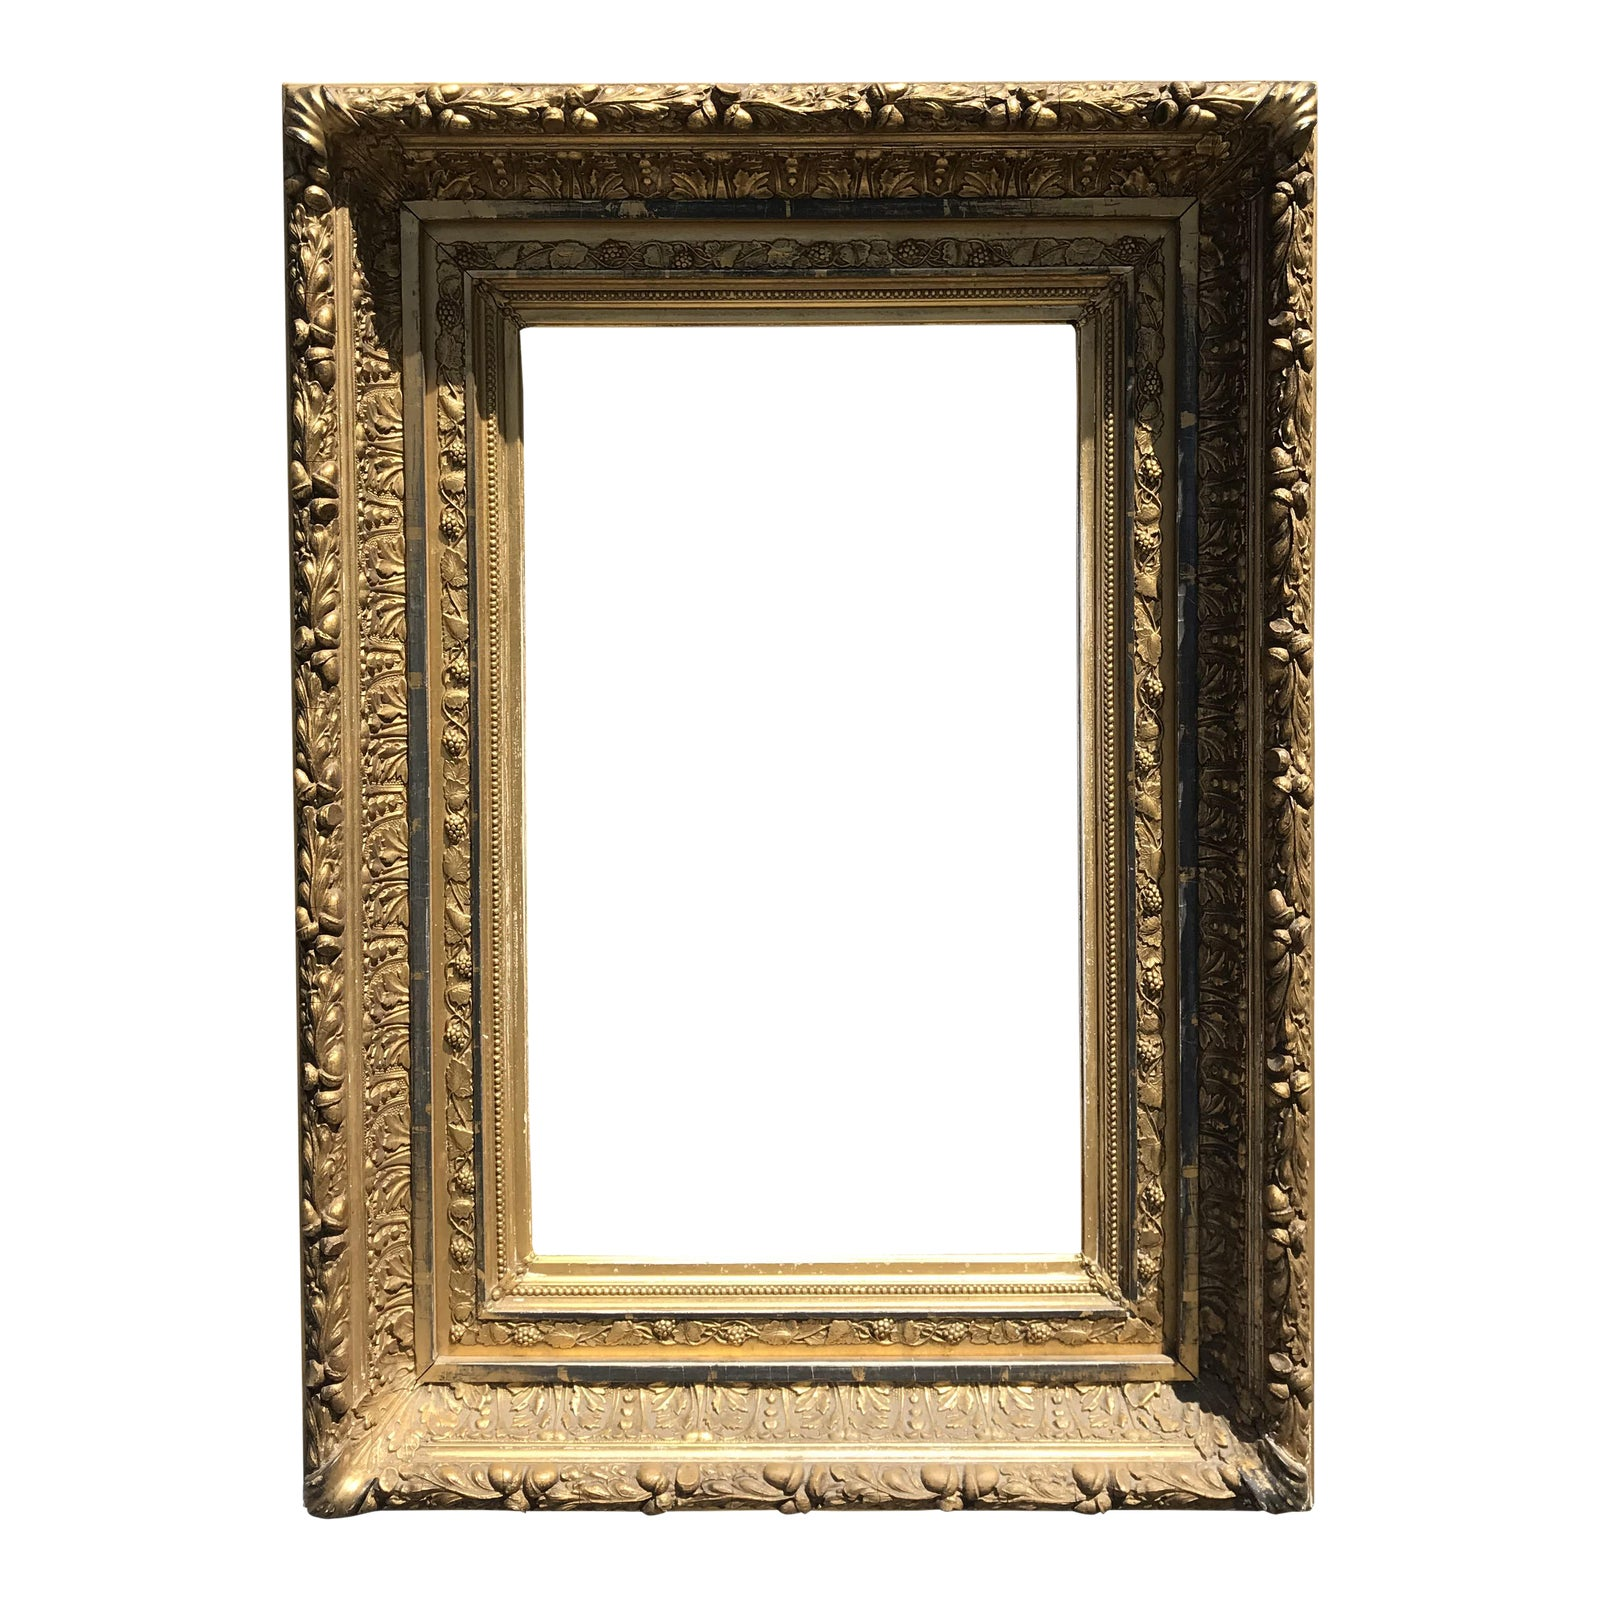 1880s American Giltwood Frame for Painting or Mirror | Chairish